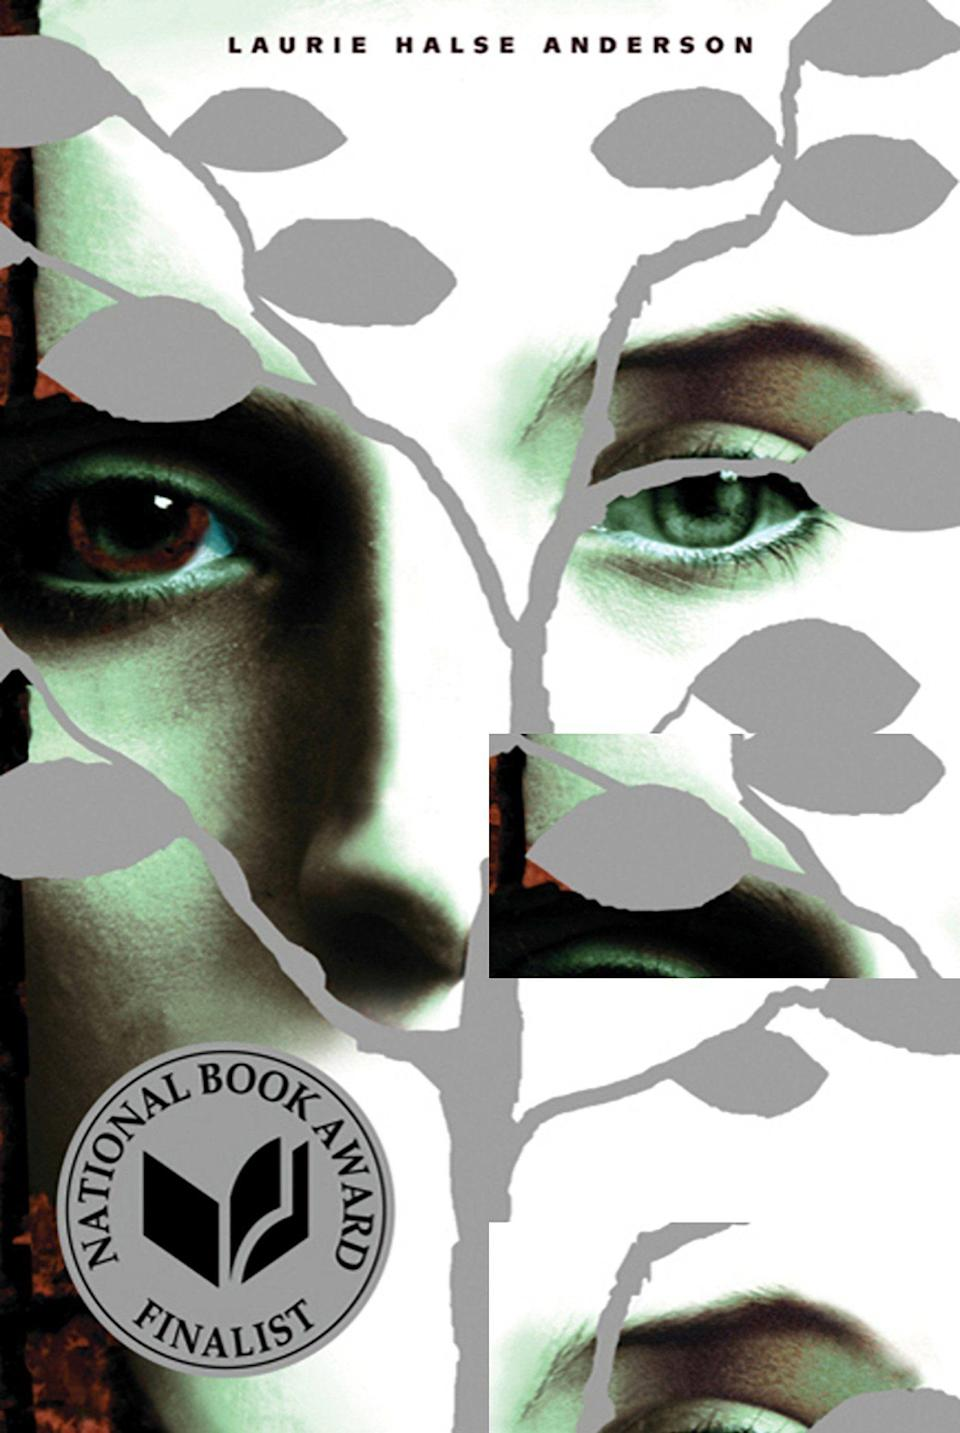 """<p><strong>Laurie Halse Anderson</strong></p><p>amazon.com</p><p><strong>$9.68</strong></p><p><a href=""""https://www.amazon.com/dp/0312674392?tag=syn-yahoo-20&ascsubtag=%5Bartid%7C10055.g.22749180%5Bsrc%7Cyahoo-us"""" rel=""""nofollow noopener"""" target=""""_blank"""" data-ylk=""""slk:Shop Now"""" class=""""link rapid-noclick-resp"""">Shop Now</a></p><p>This National Book Award finalist addresses the complicated challenges that surround speaking up about rape and assault. If you don't know how to start a conversation with your teen on the topic, let this powerful book guide the conversation. </p>"""